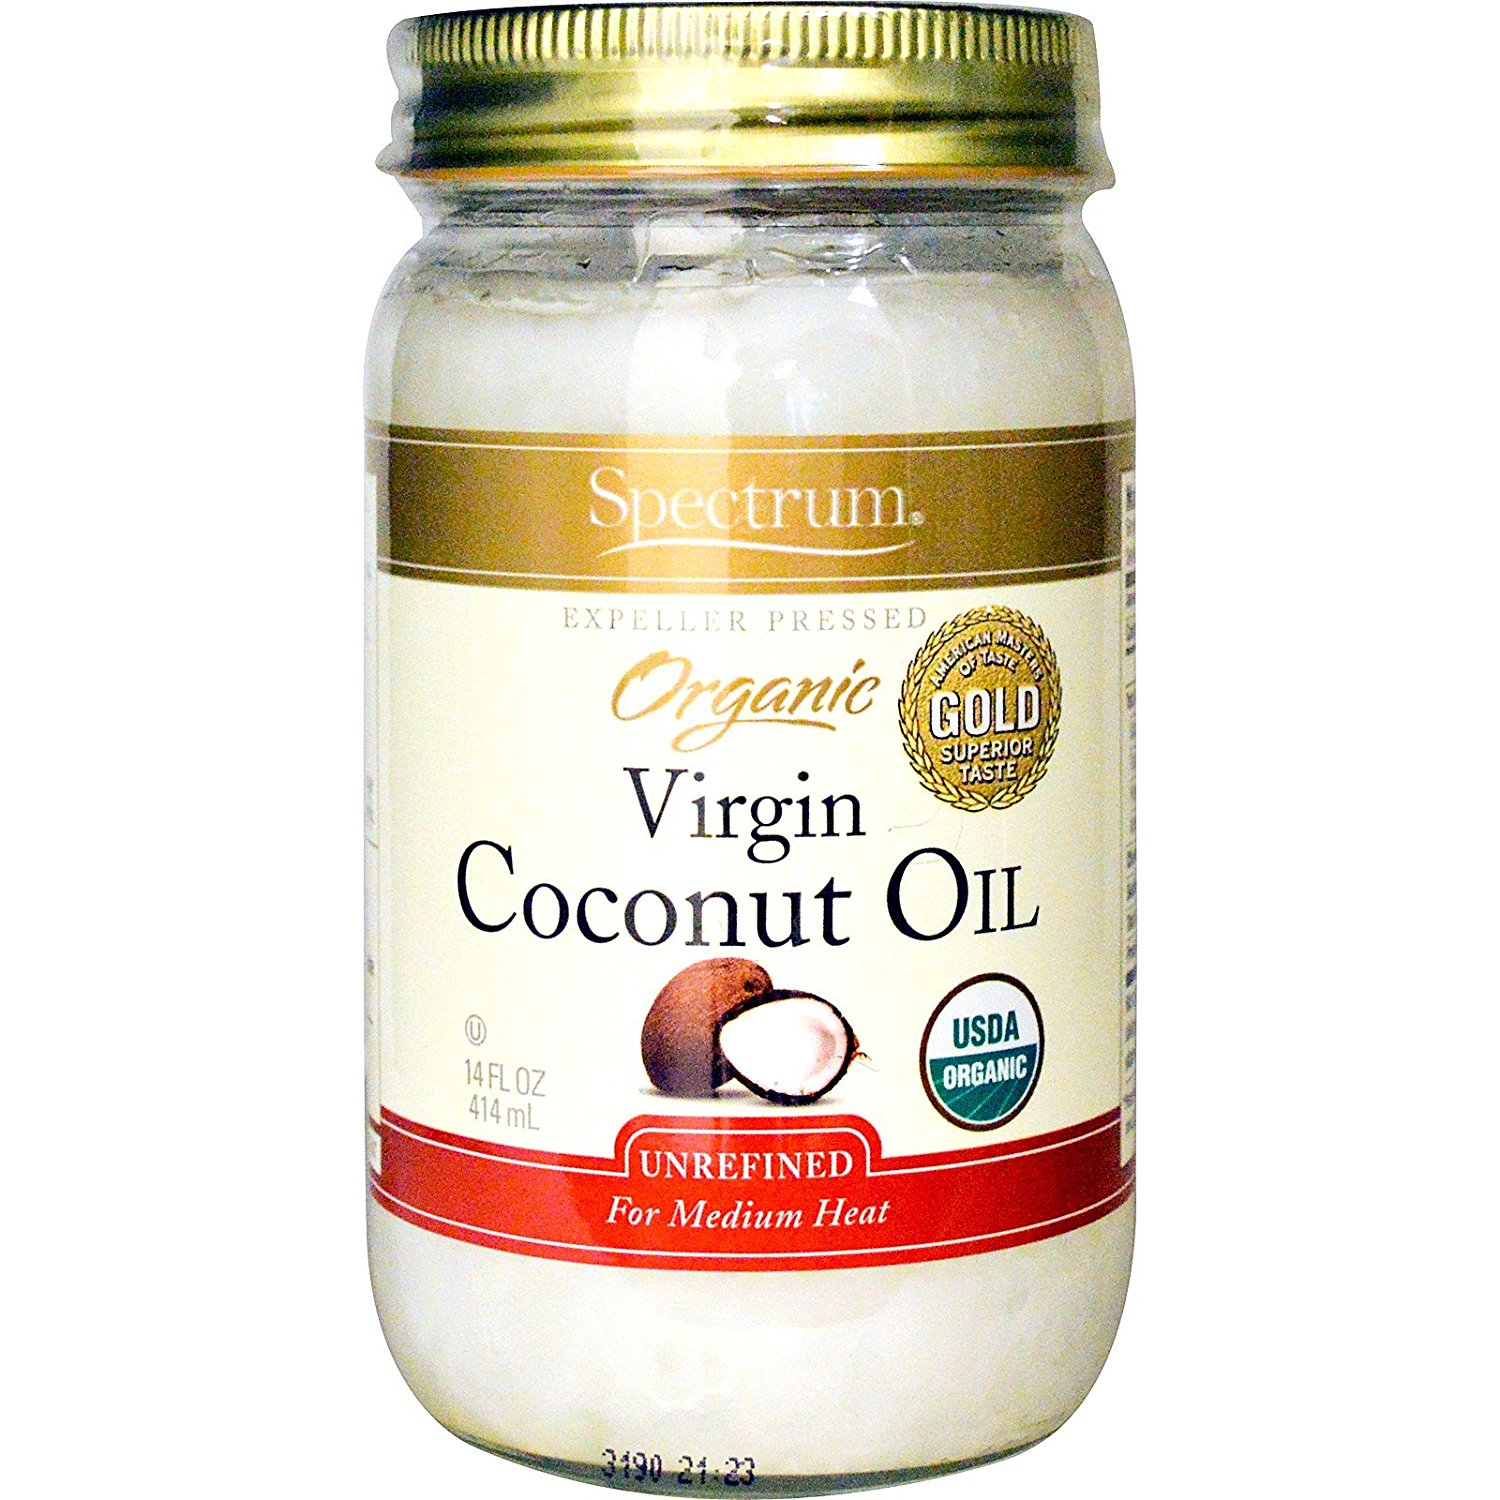 $6. Learn more about coconut oil  here.